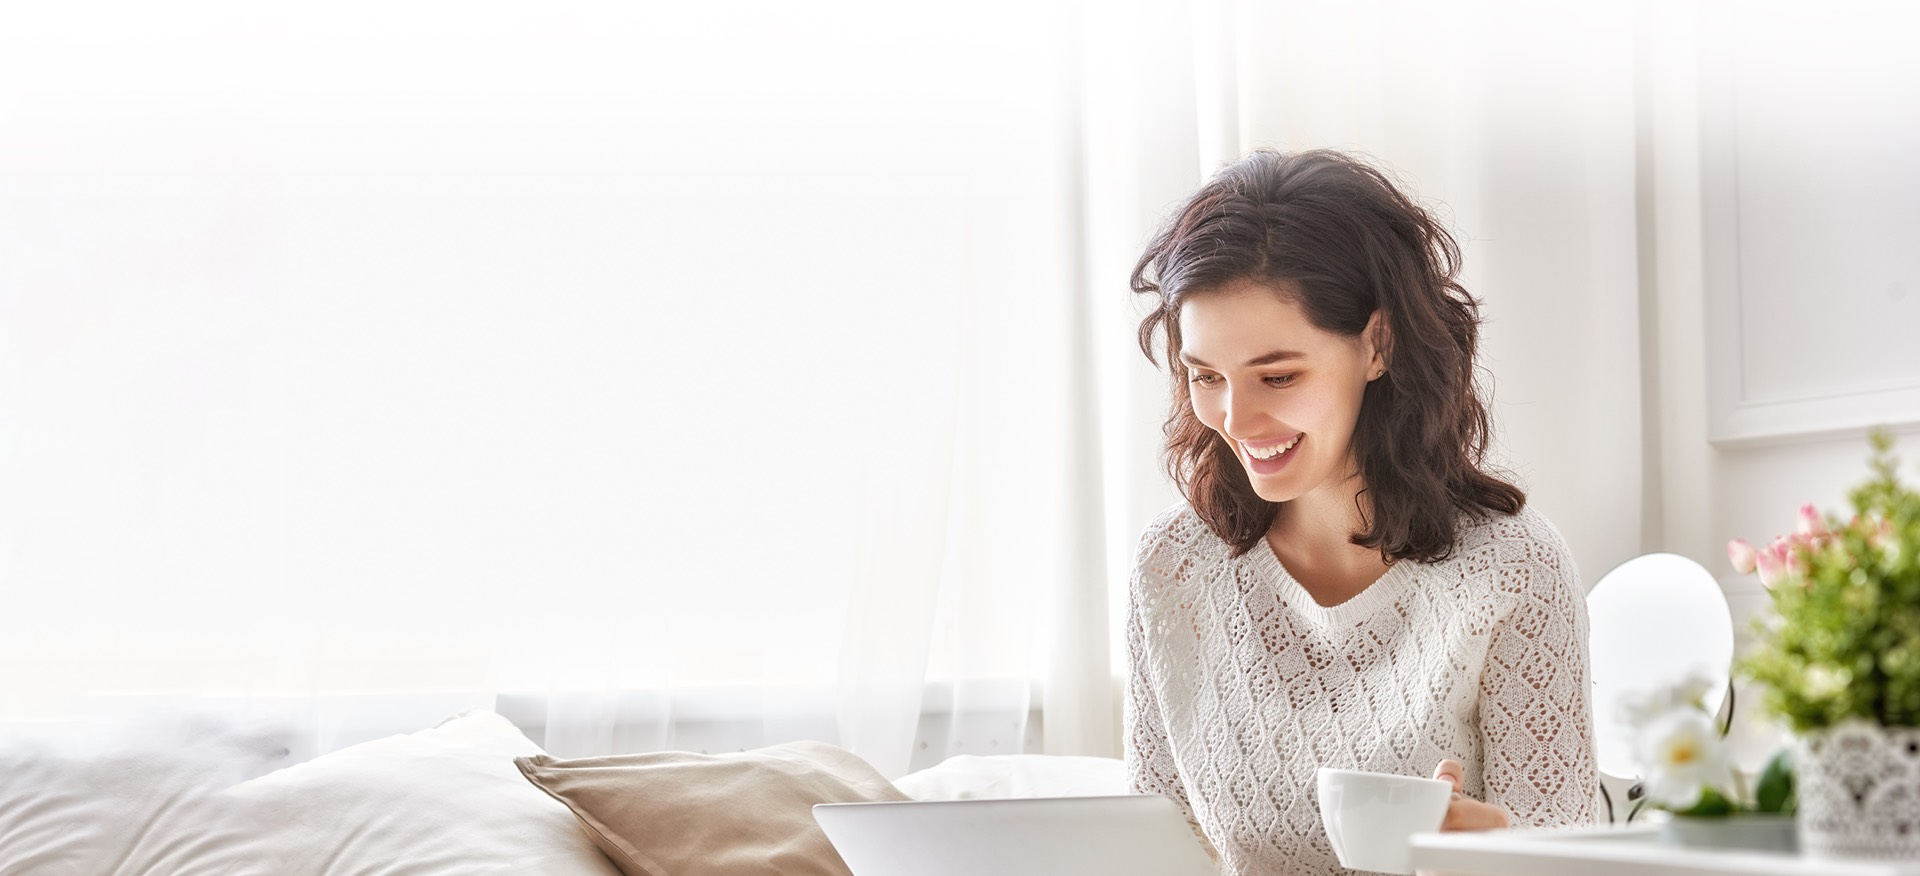 Woman smiling at the Griddy savings on her laptop